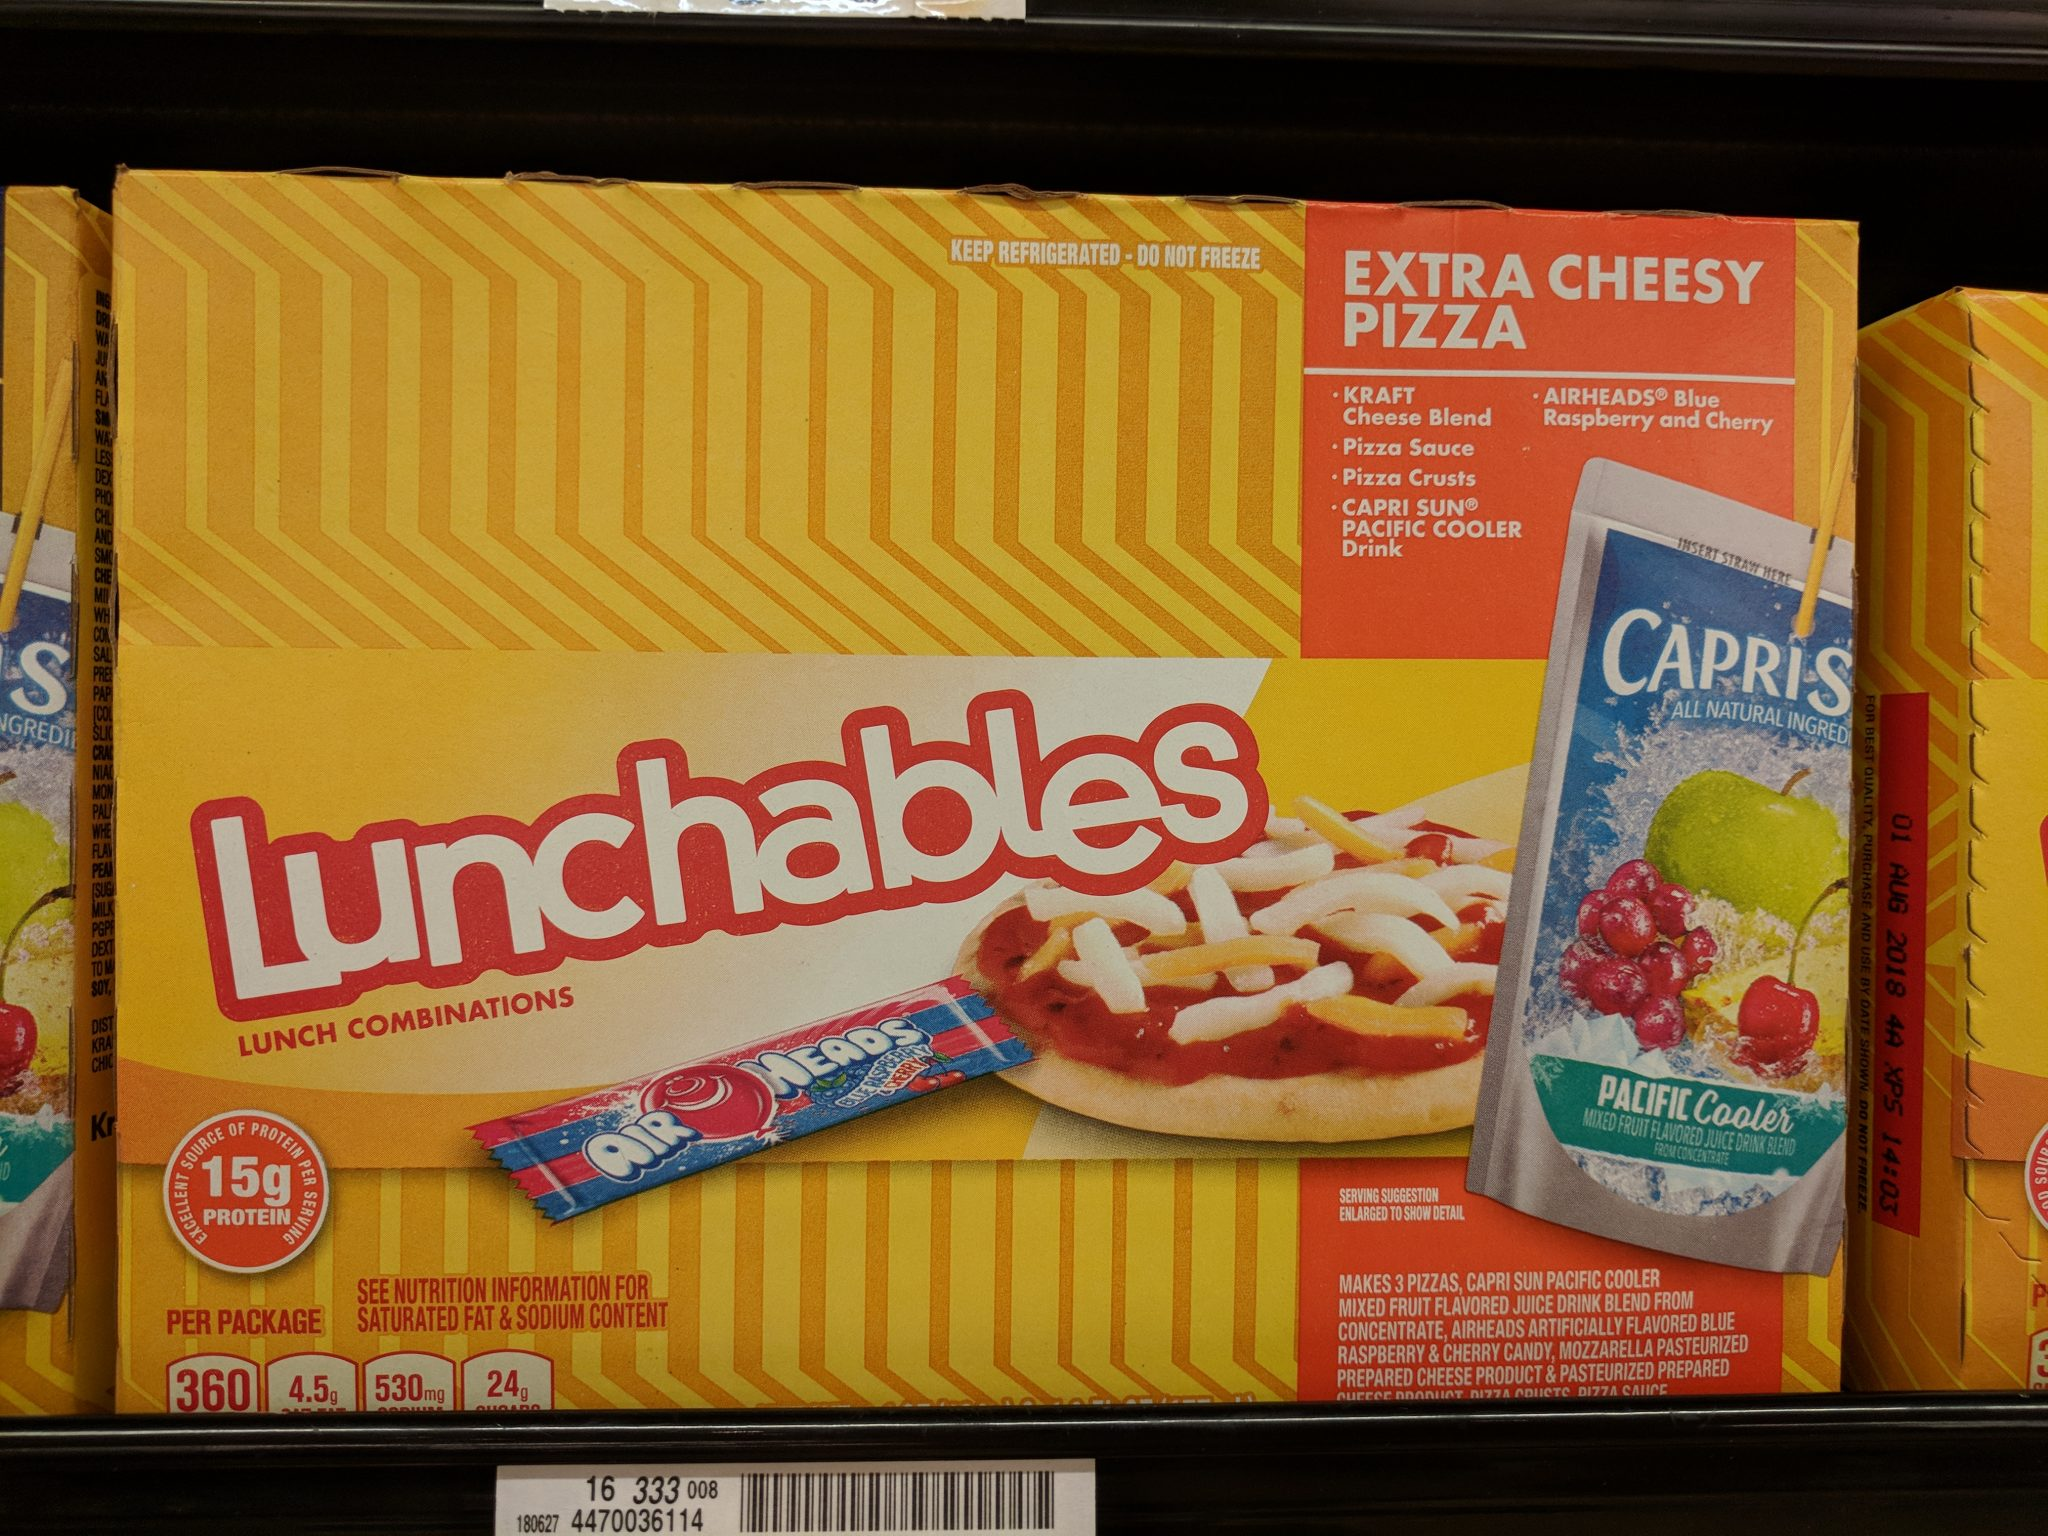 Hot Deal On Oscar Mayer Lunchables! No Coupons Needed!!